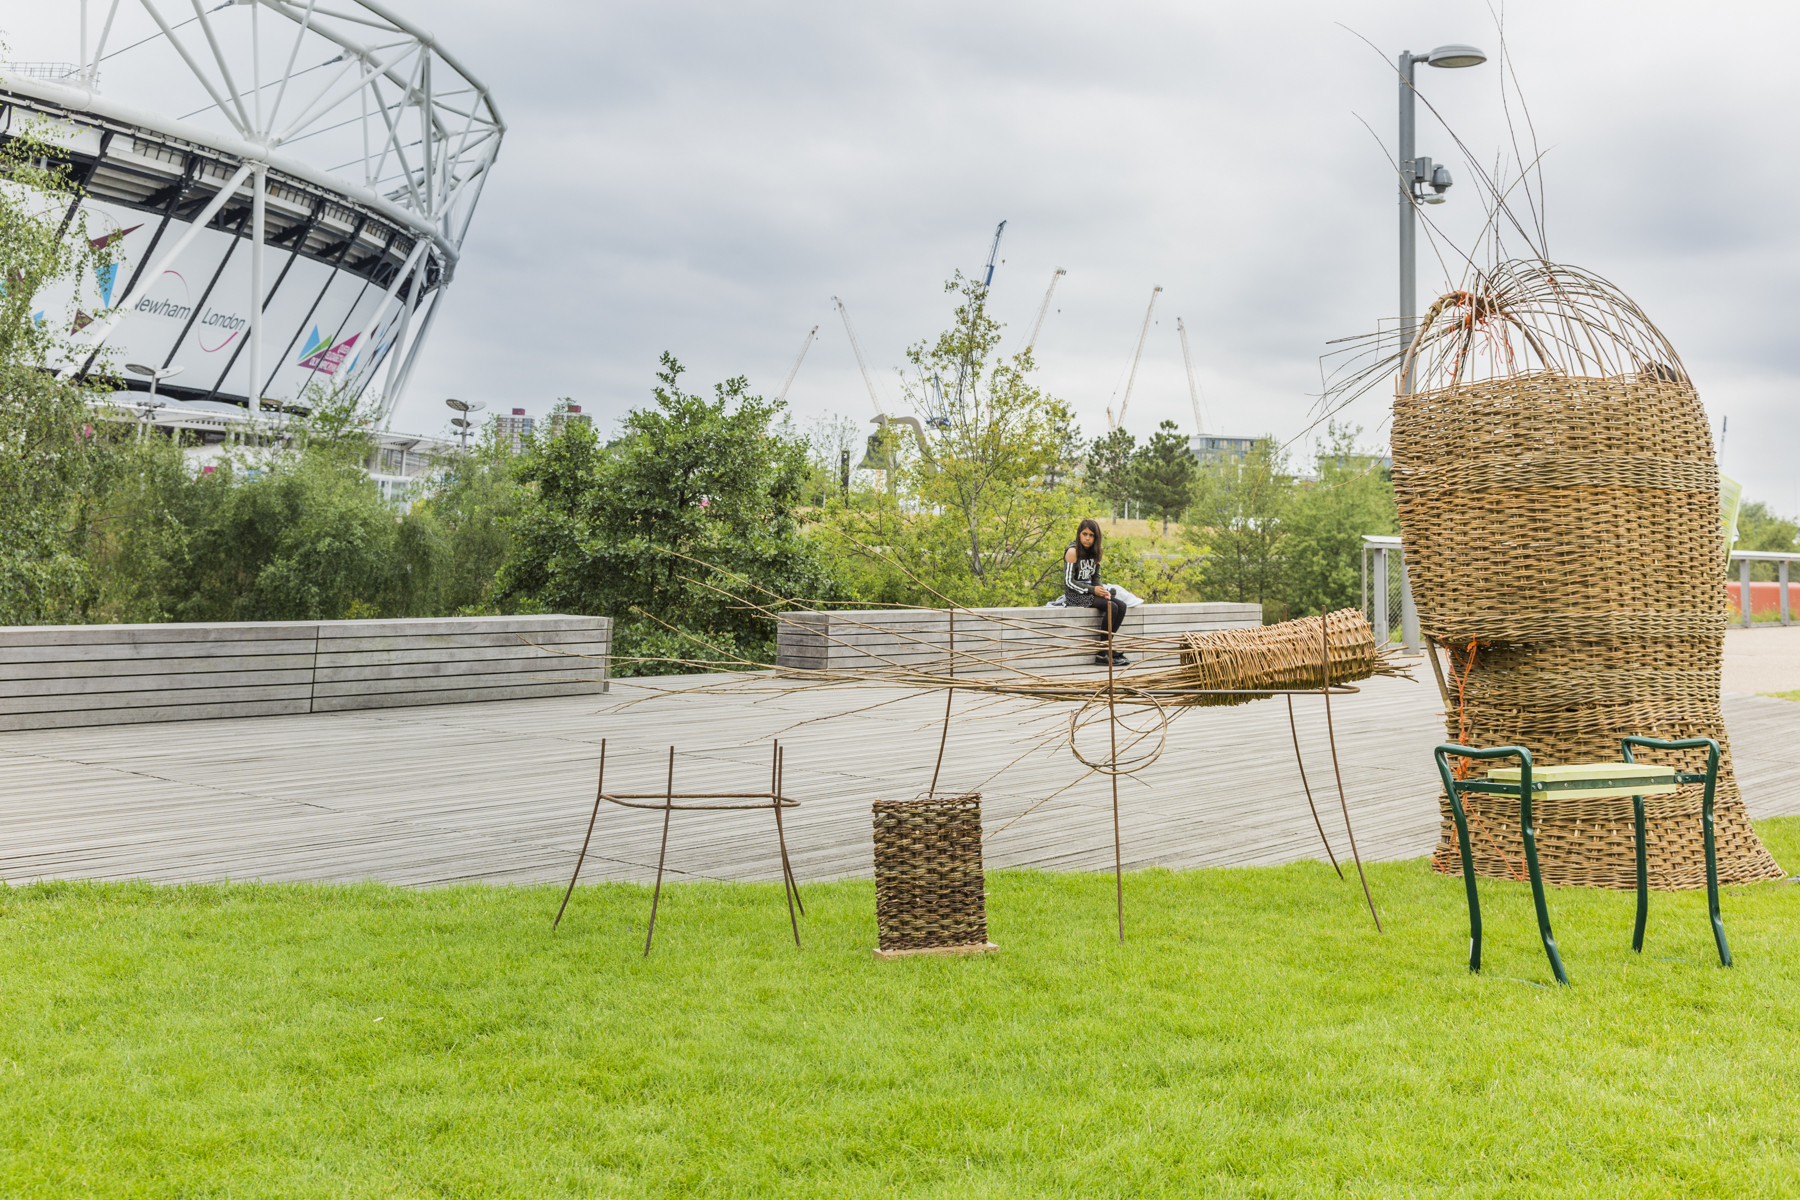 A collection of medium-sized sculptures woven from willow are standing in a park; there is a stadium in the background